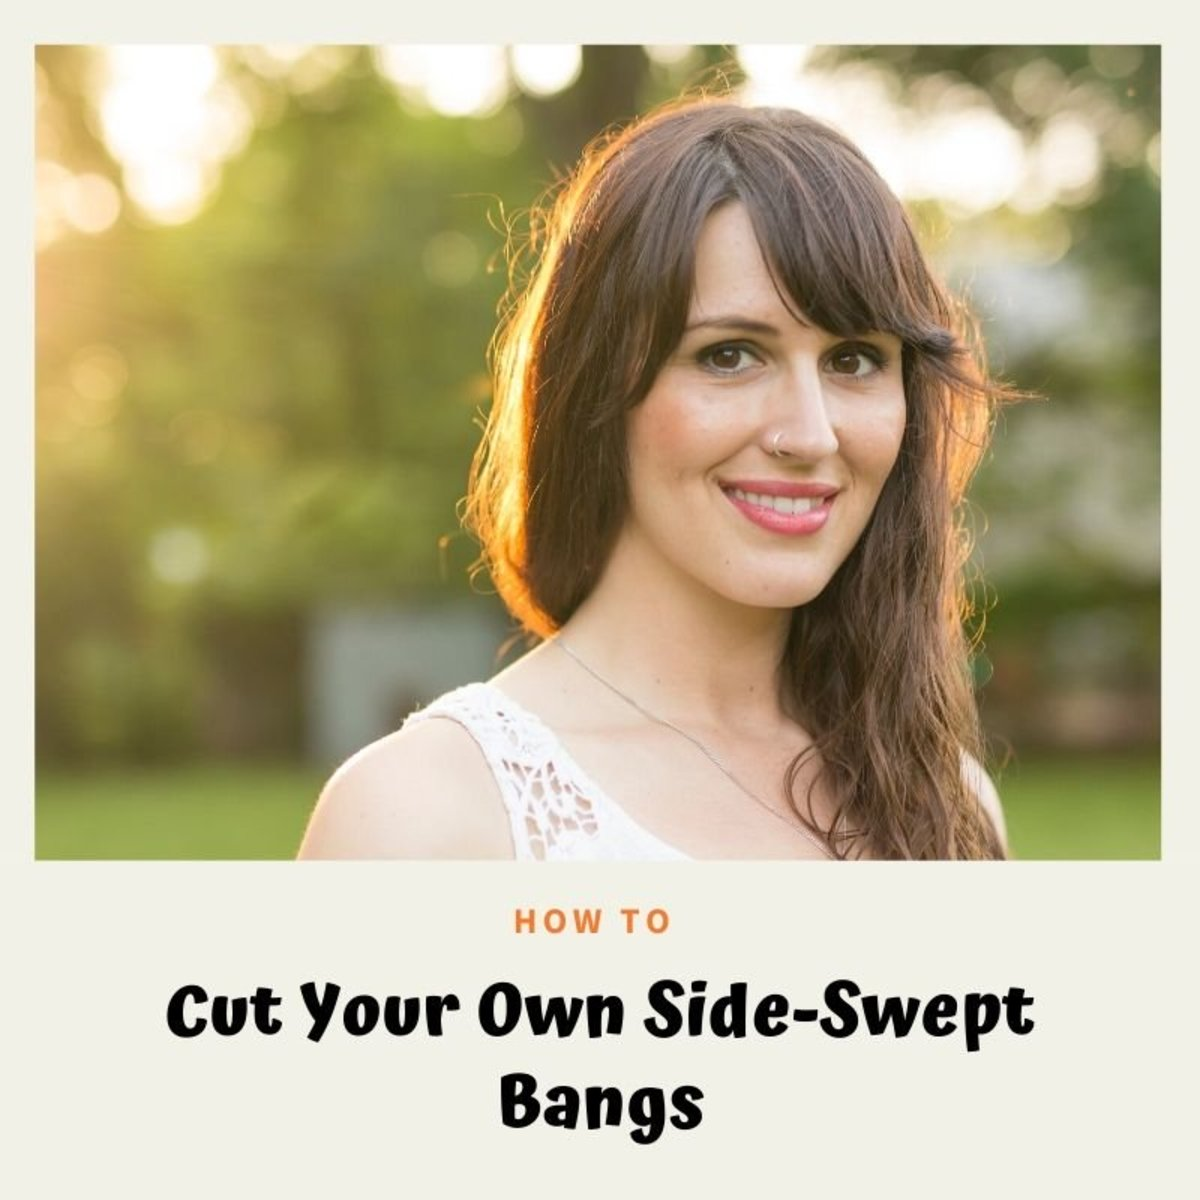 How to Cut Your Own Side-Swept Bangs